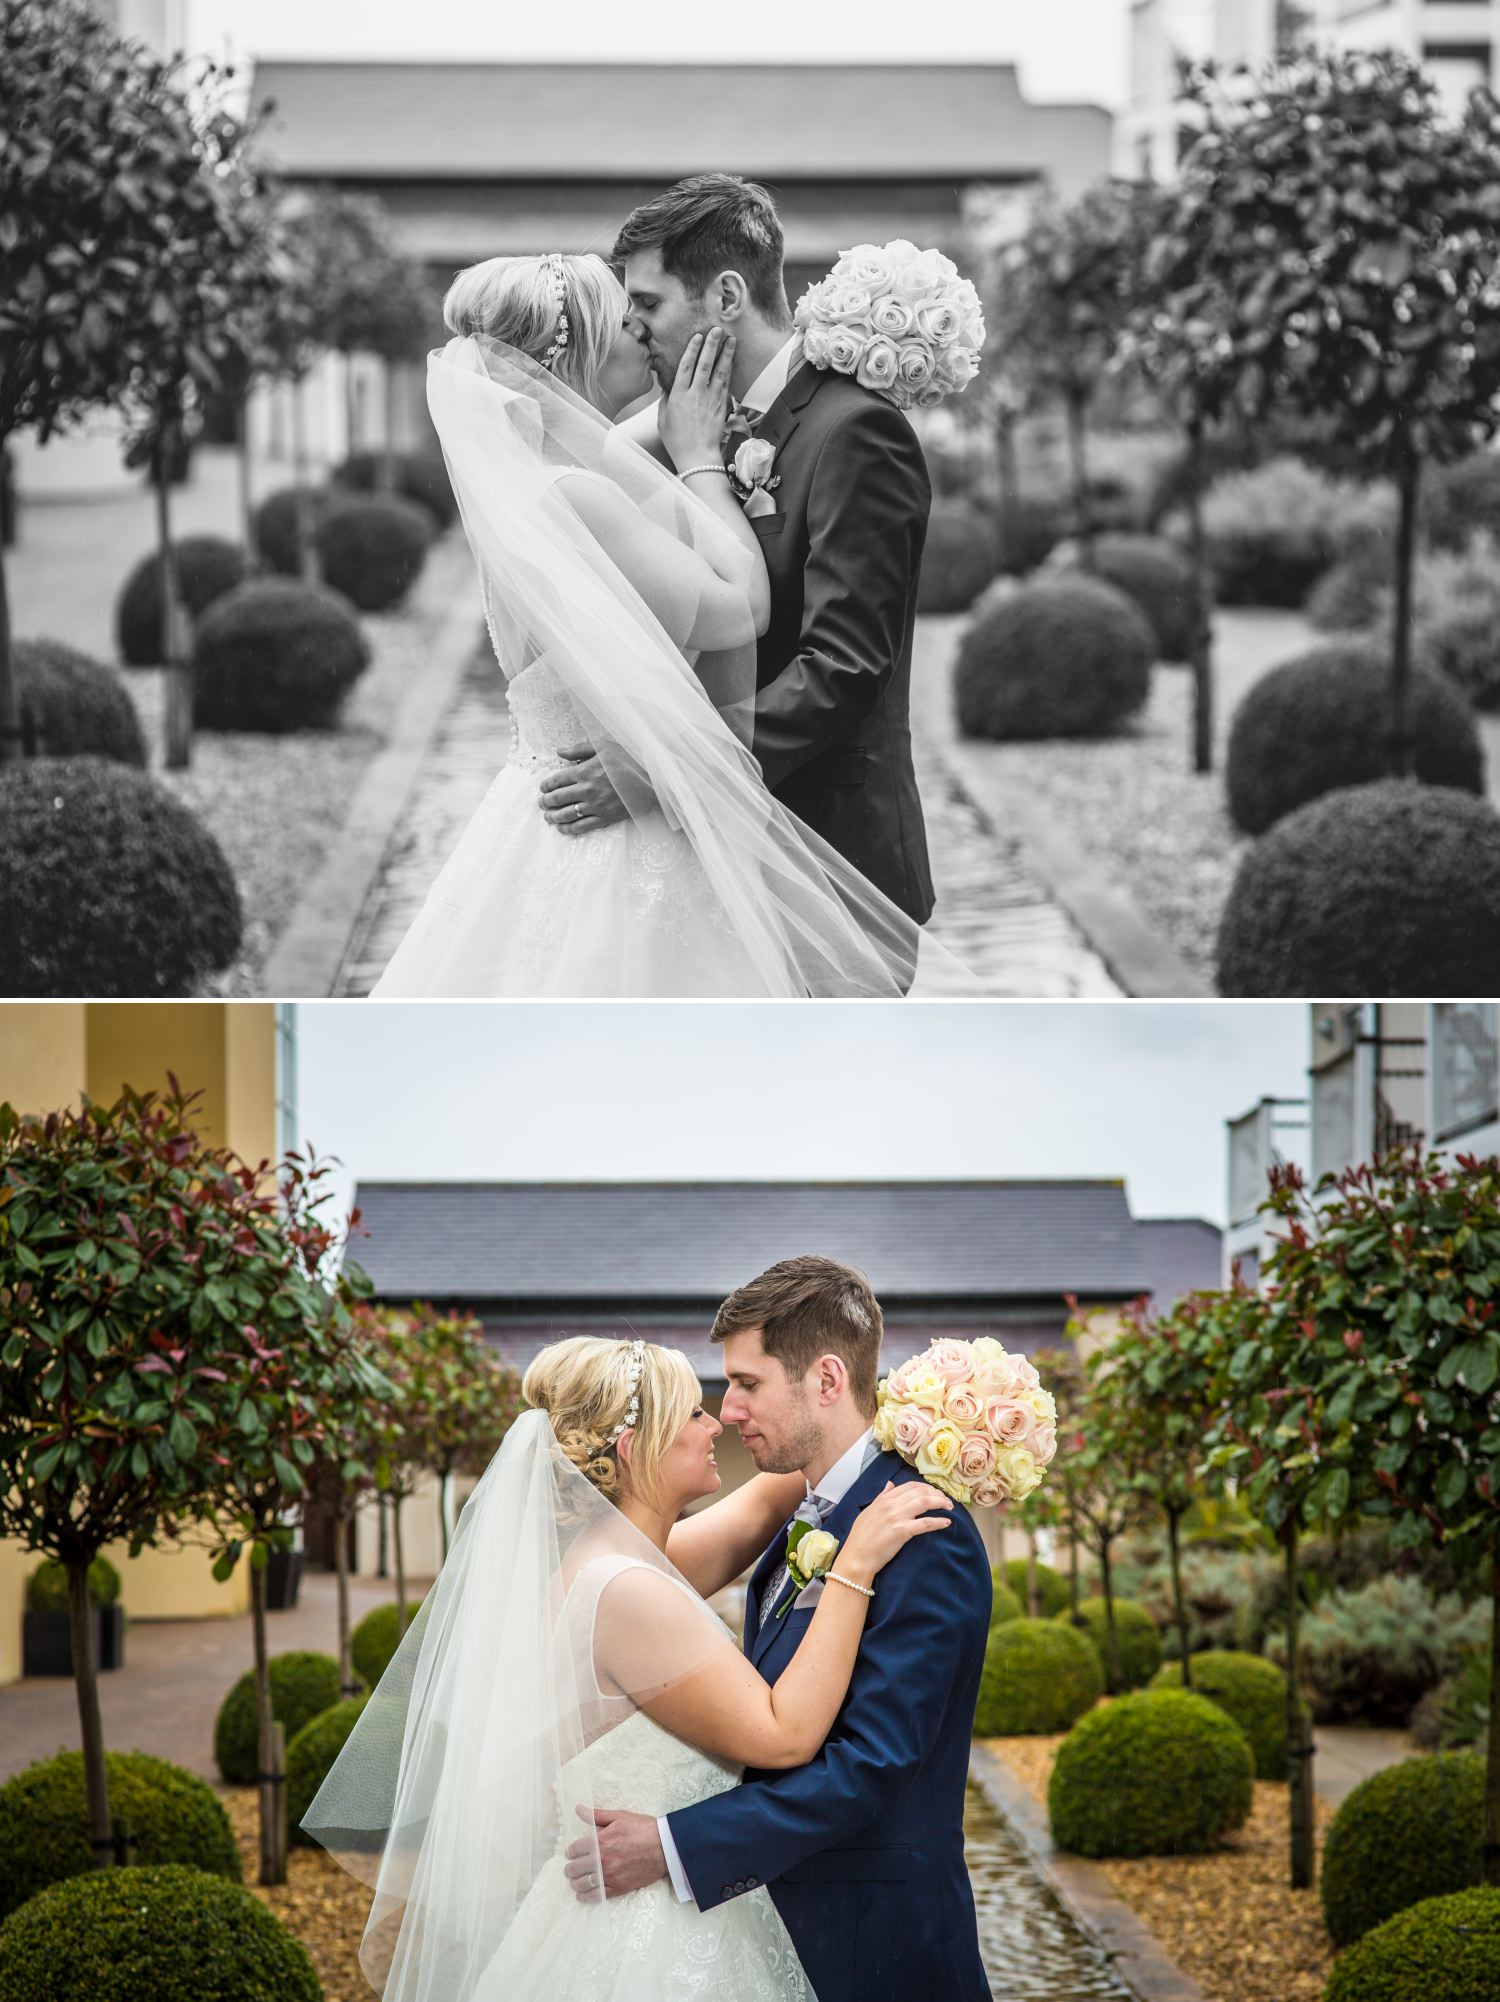 Wedding photography portraits at the Quay Hotel, North Wales